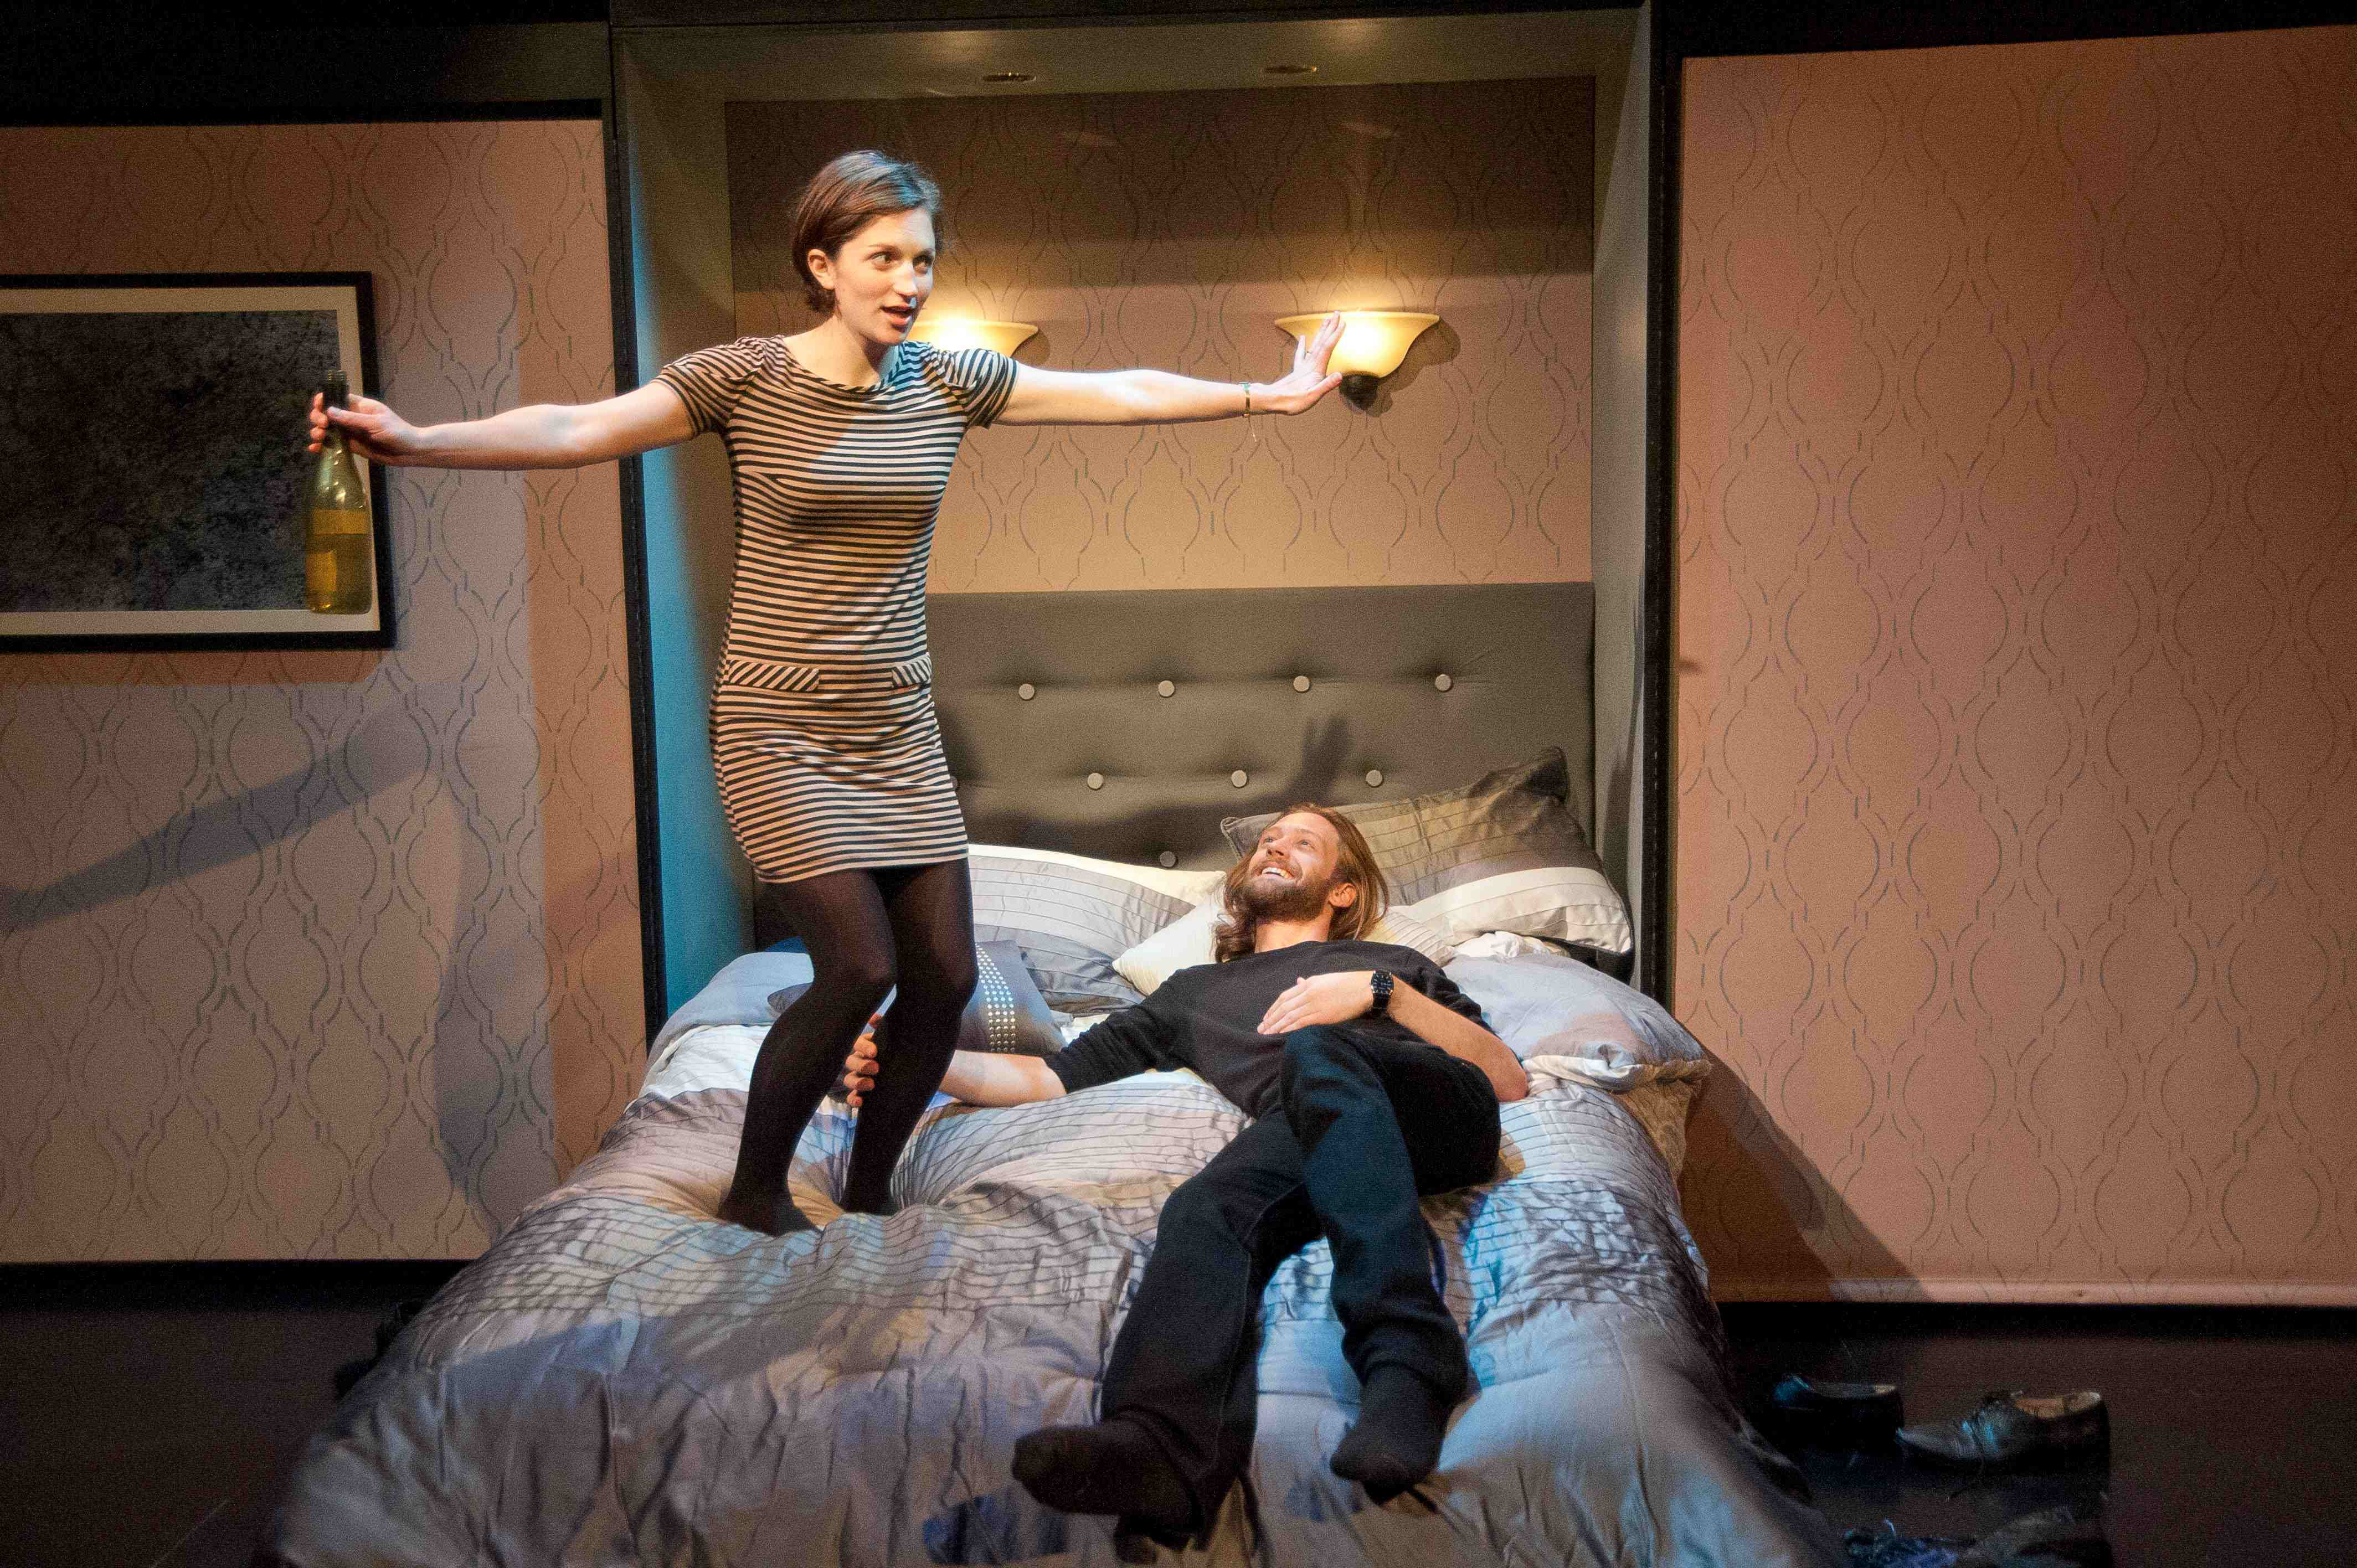 Caroline Calkins and Marcus Kearns, in the play within the play. Photo: Enrico Spada